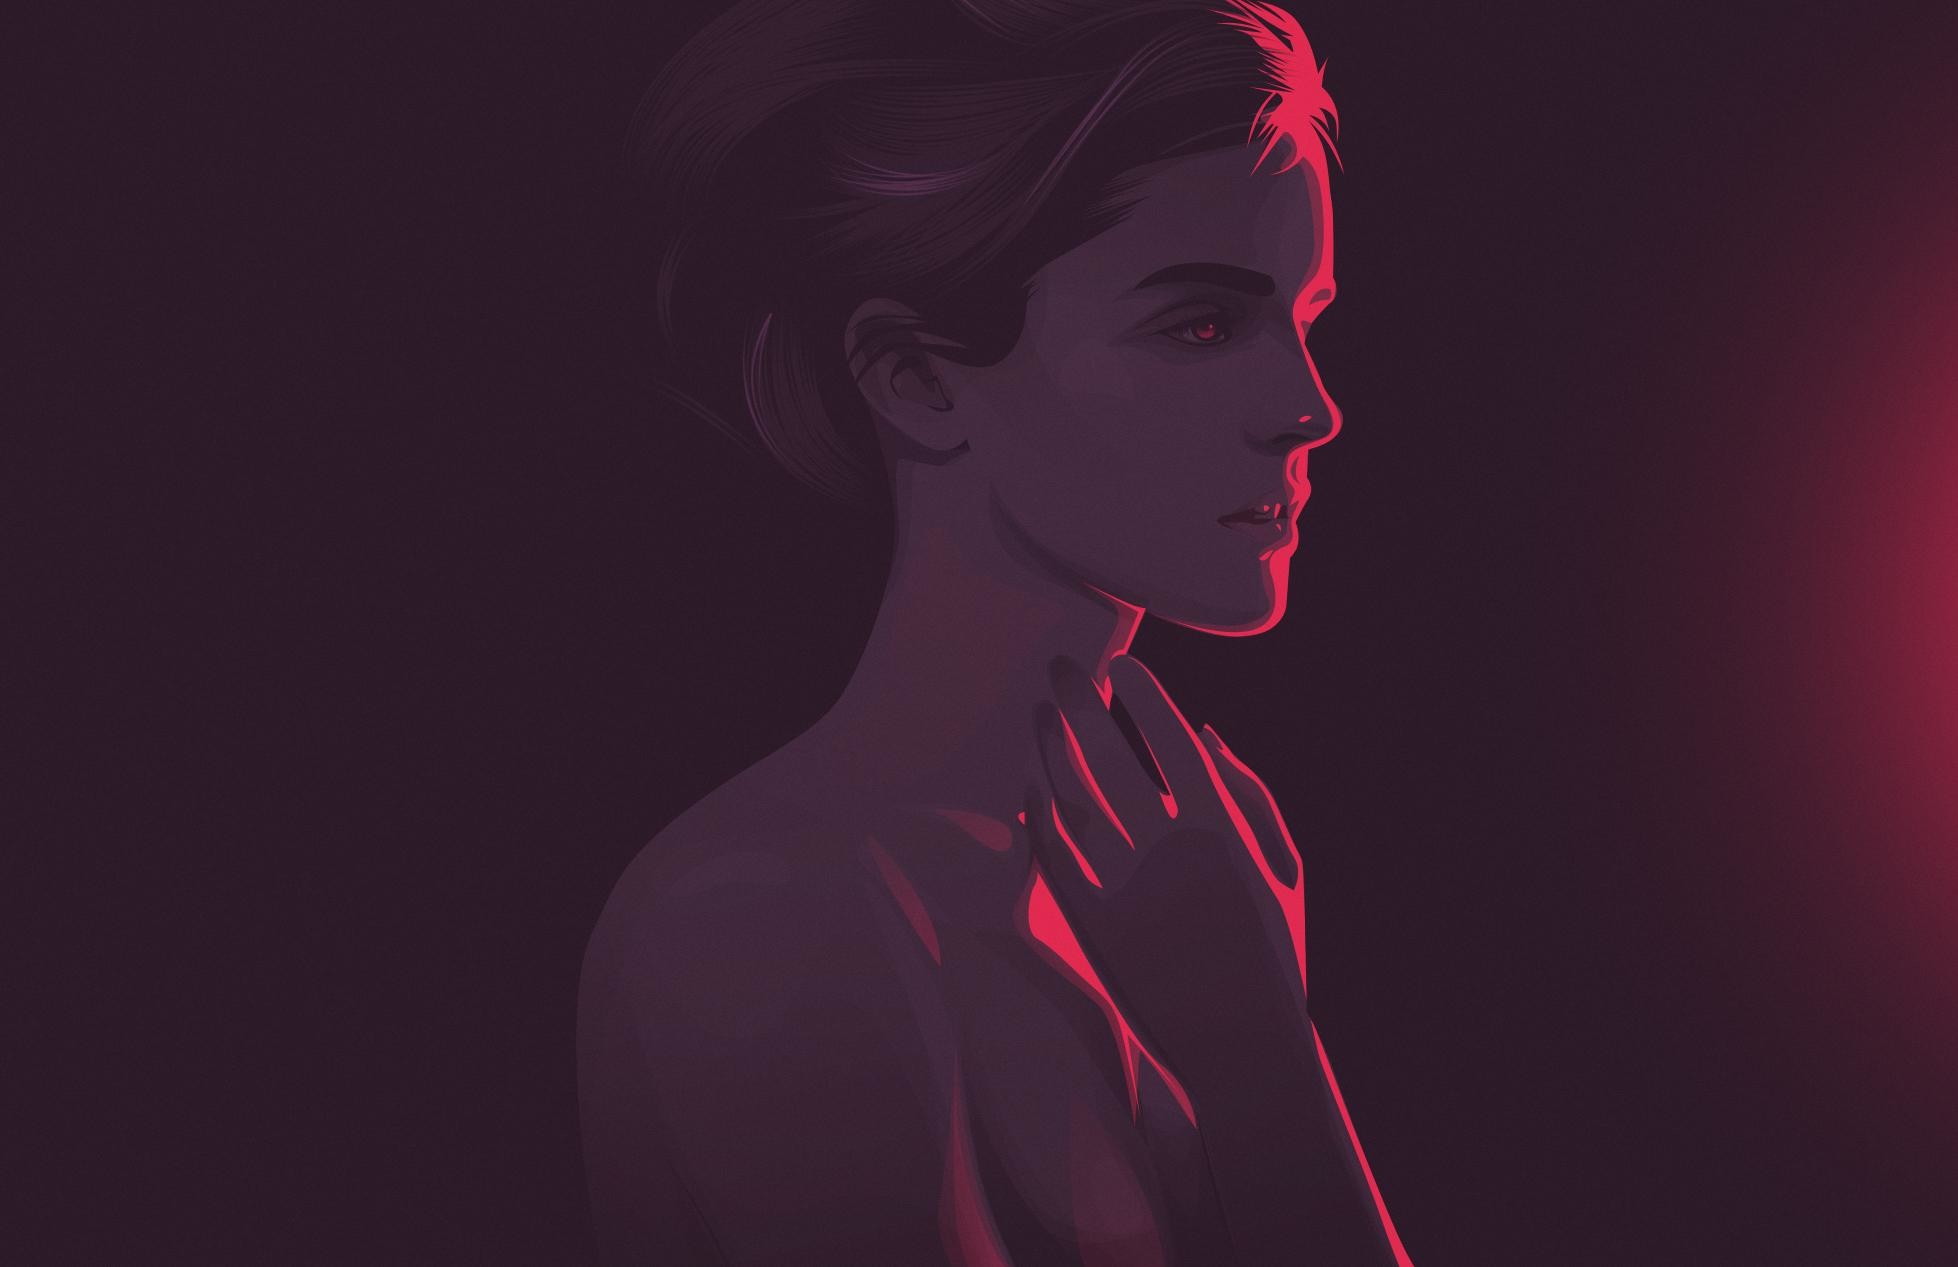 Wallpaper 3440x1440 Girl Synthwave Wallpaper 80 Images